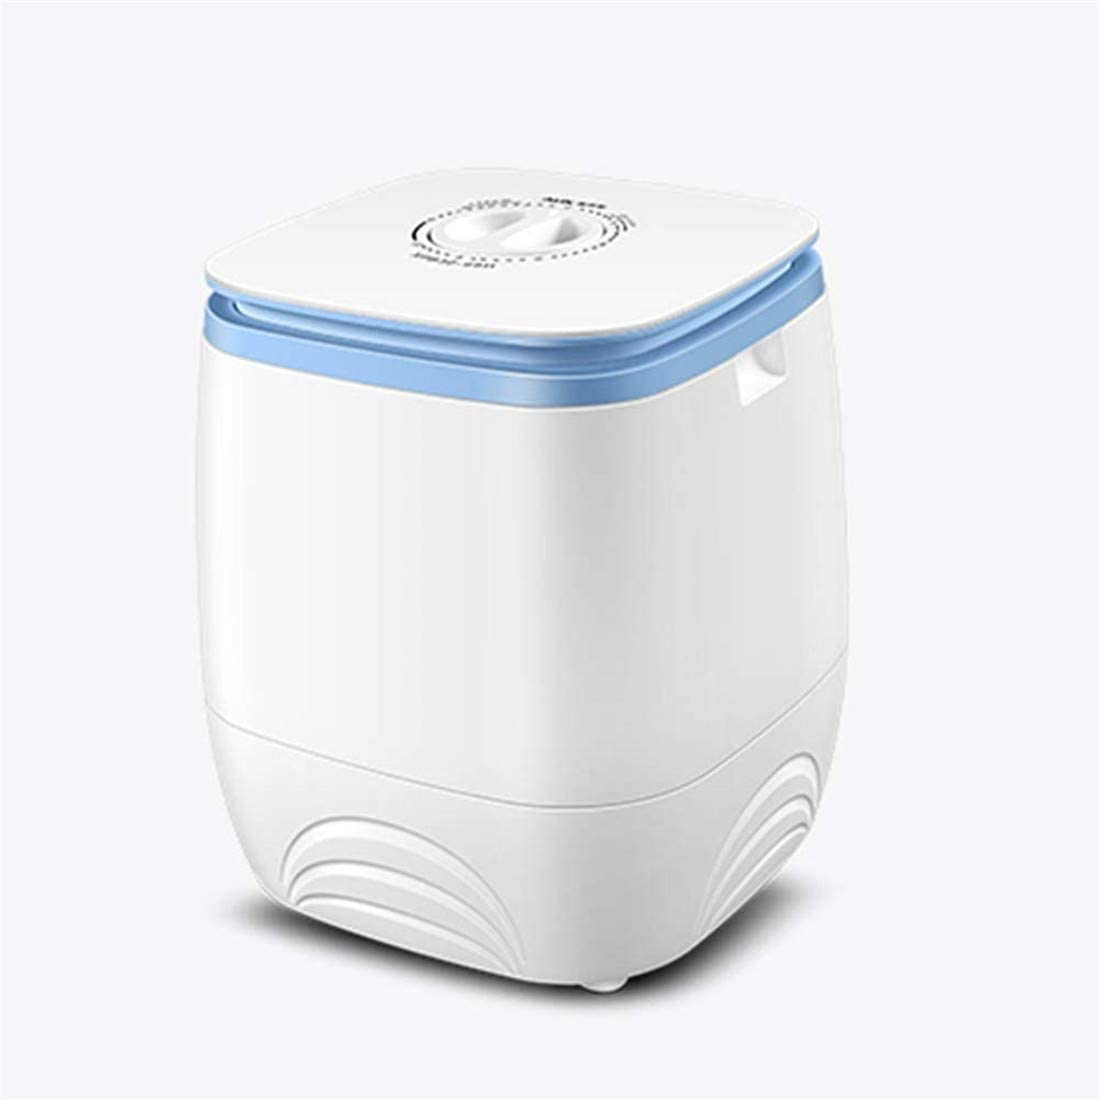 Wenore Portable Single Barrel Washing Machine Semi-Automatic Mini Washing Device Large Capacity Suitable for Baby Clothes to Be Cleaned Separately Apartment Travel Dormitories,White